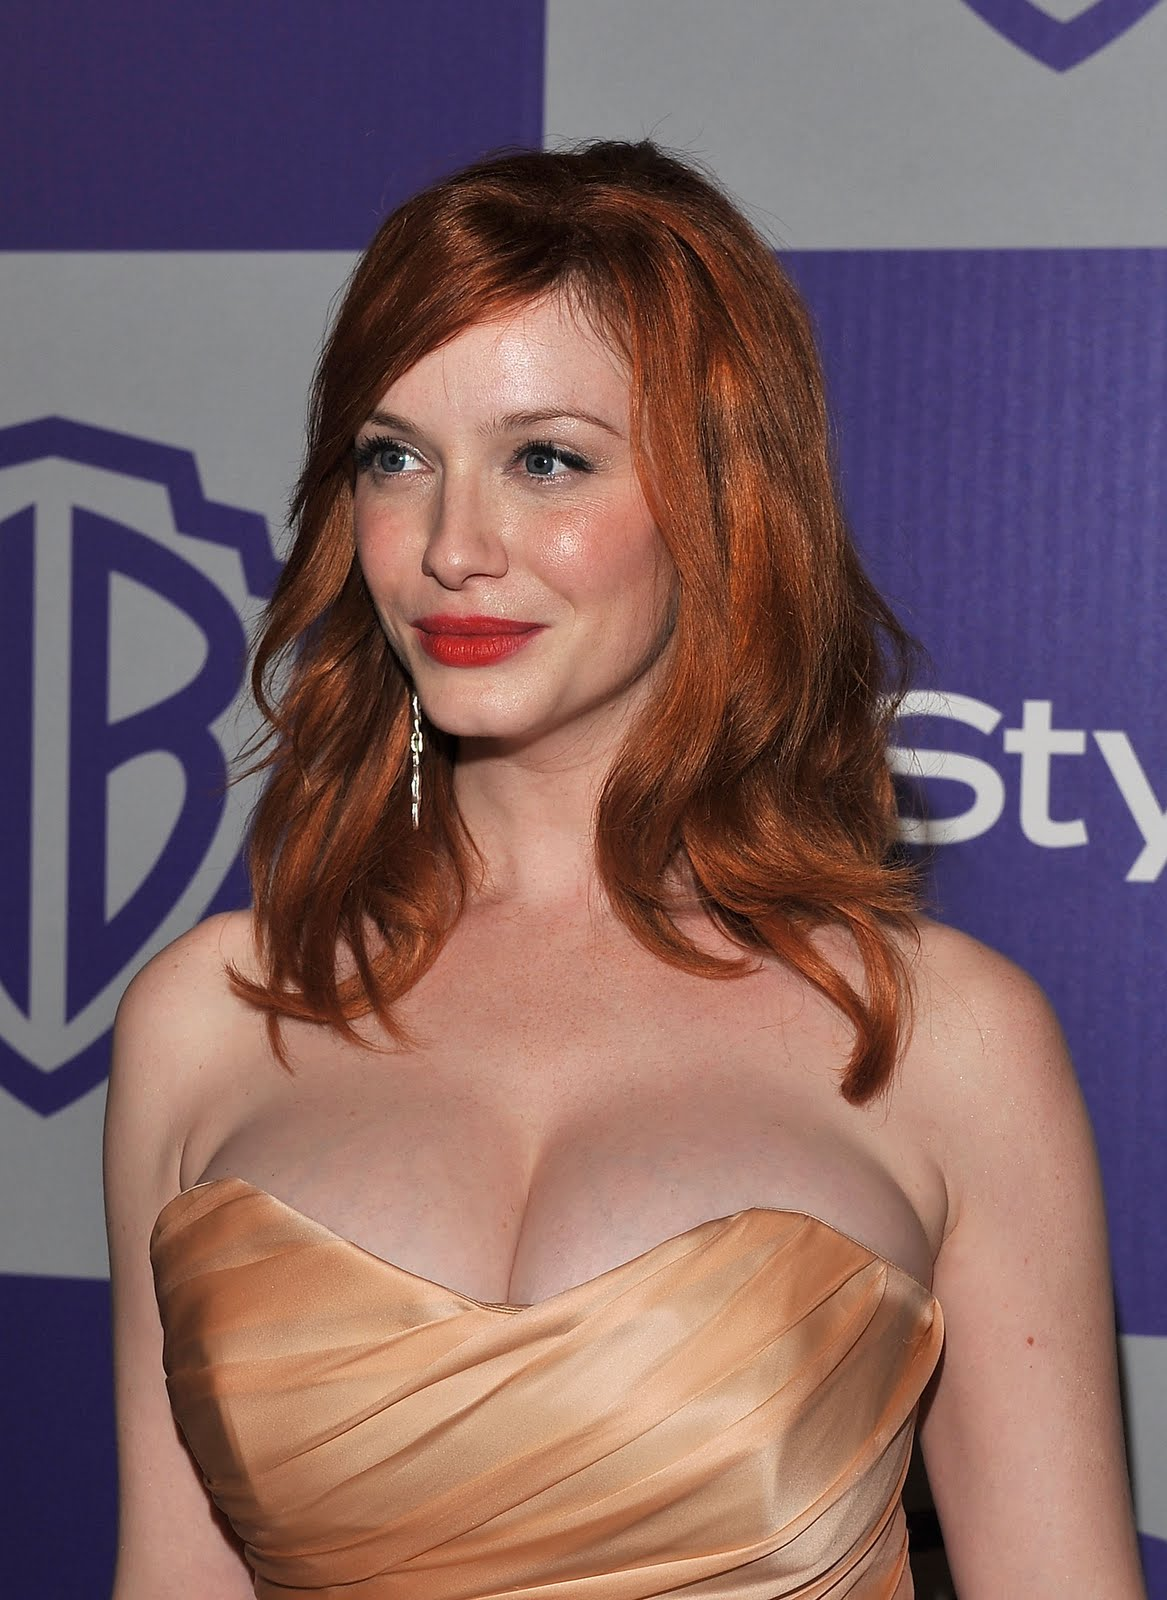 Central Wallpaper Christina Hendricks from Mad Men HD Wallpapers 1167x1600